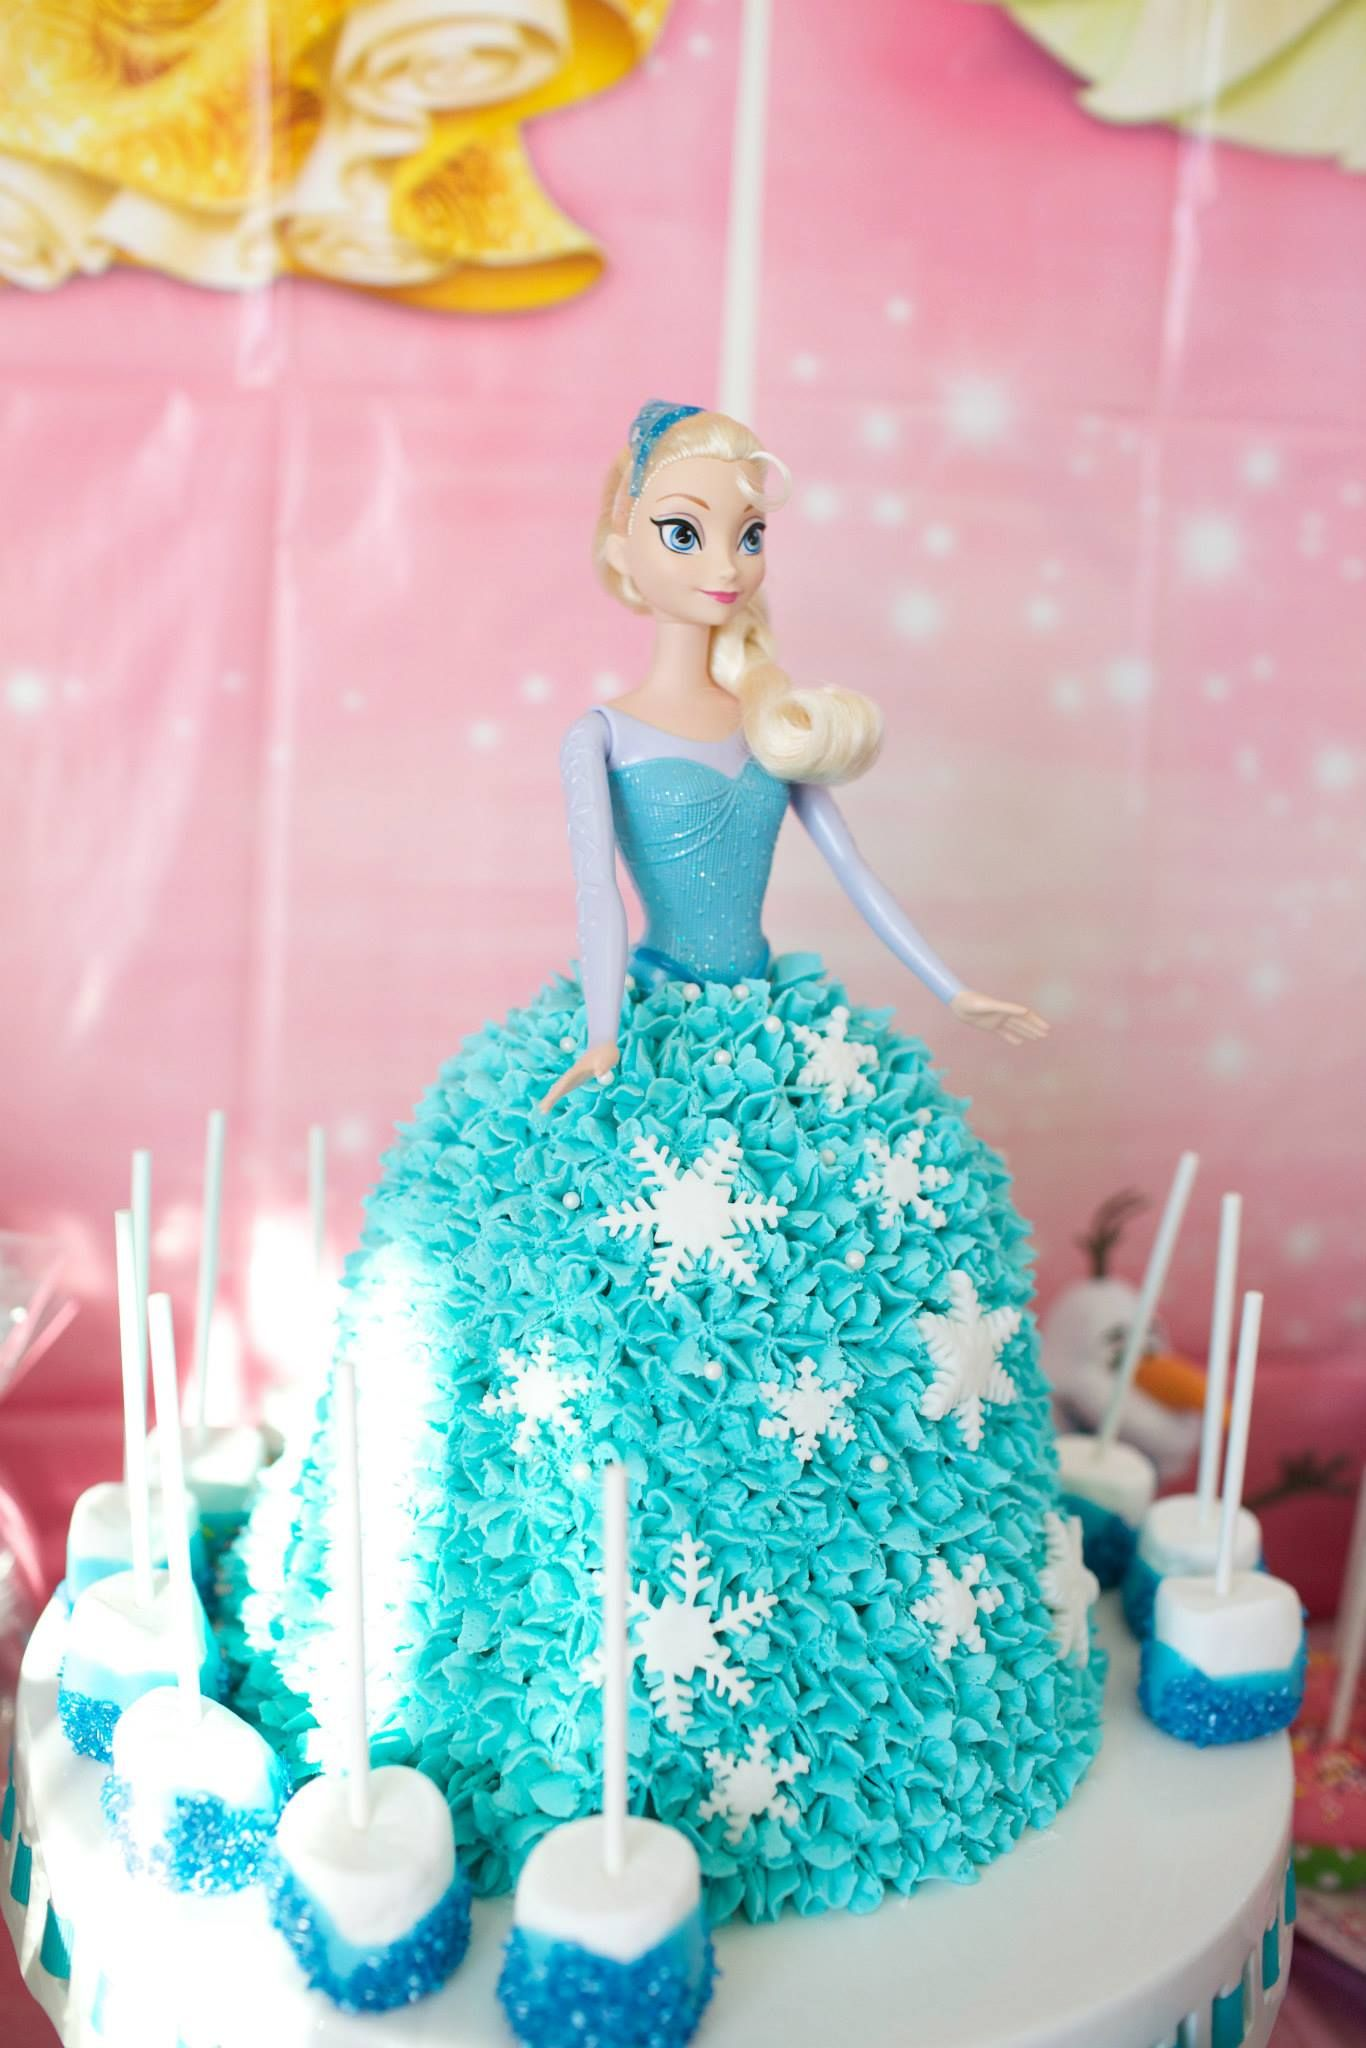 Enjoyable Elsa Cake I Made For My Daughters 4Th Birthday With Images Funny Birthday Cards Online Overcheapnameinfo